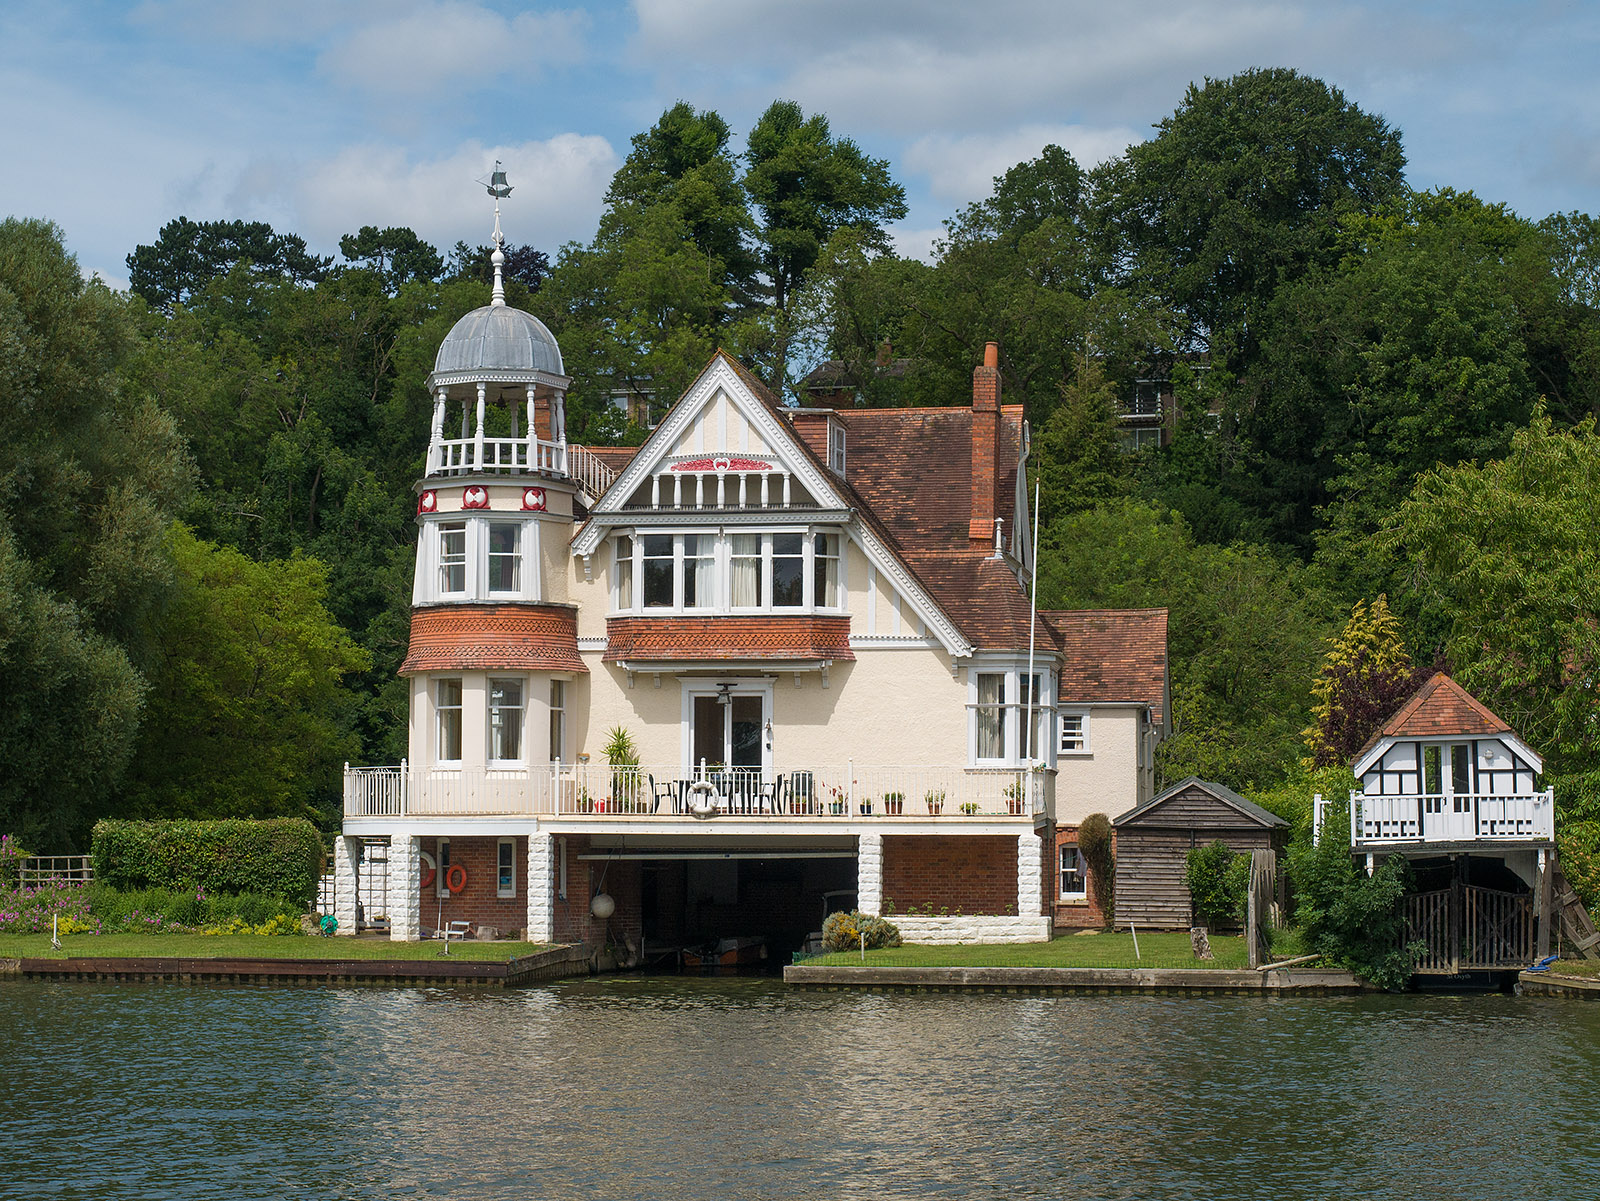 Splendid house at Caversham